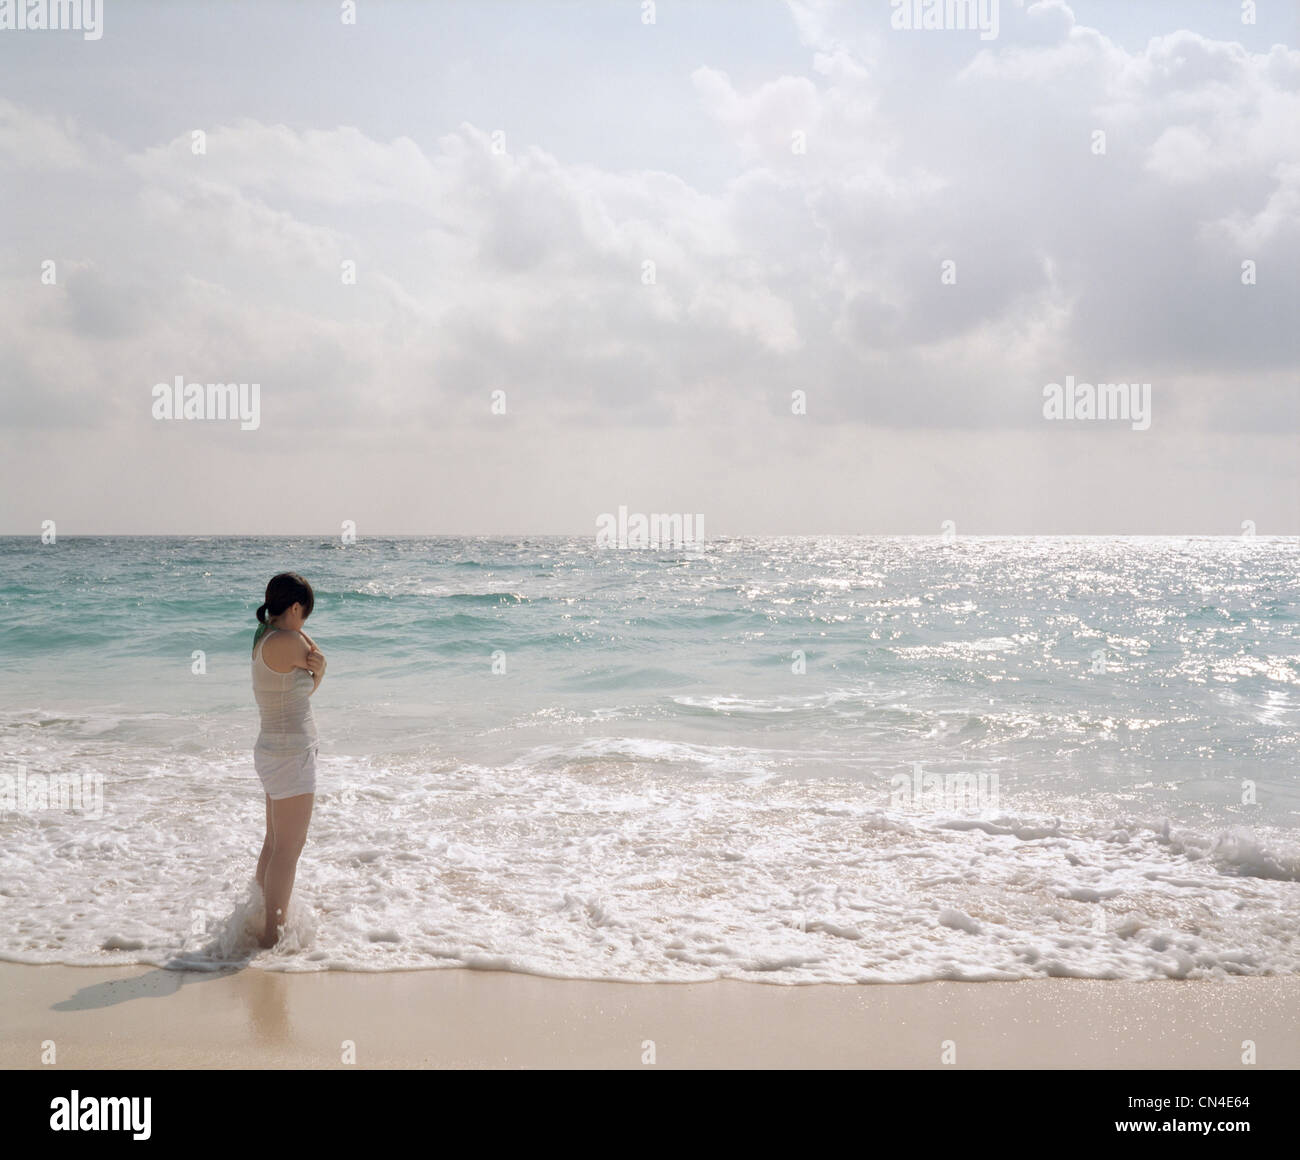 Young woman looking out to sea, Bermuda - Stock Image